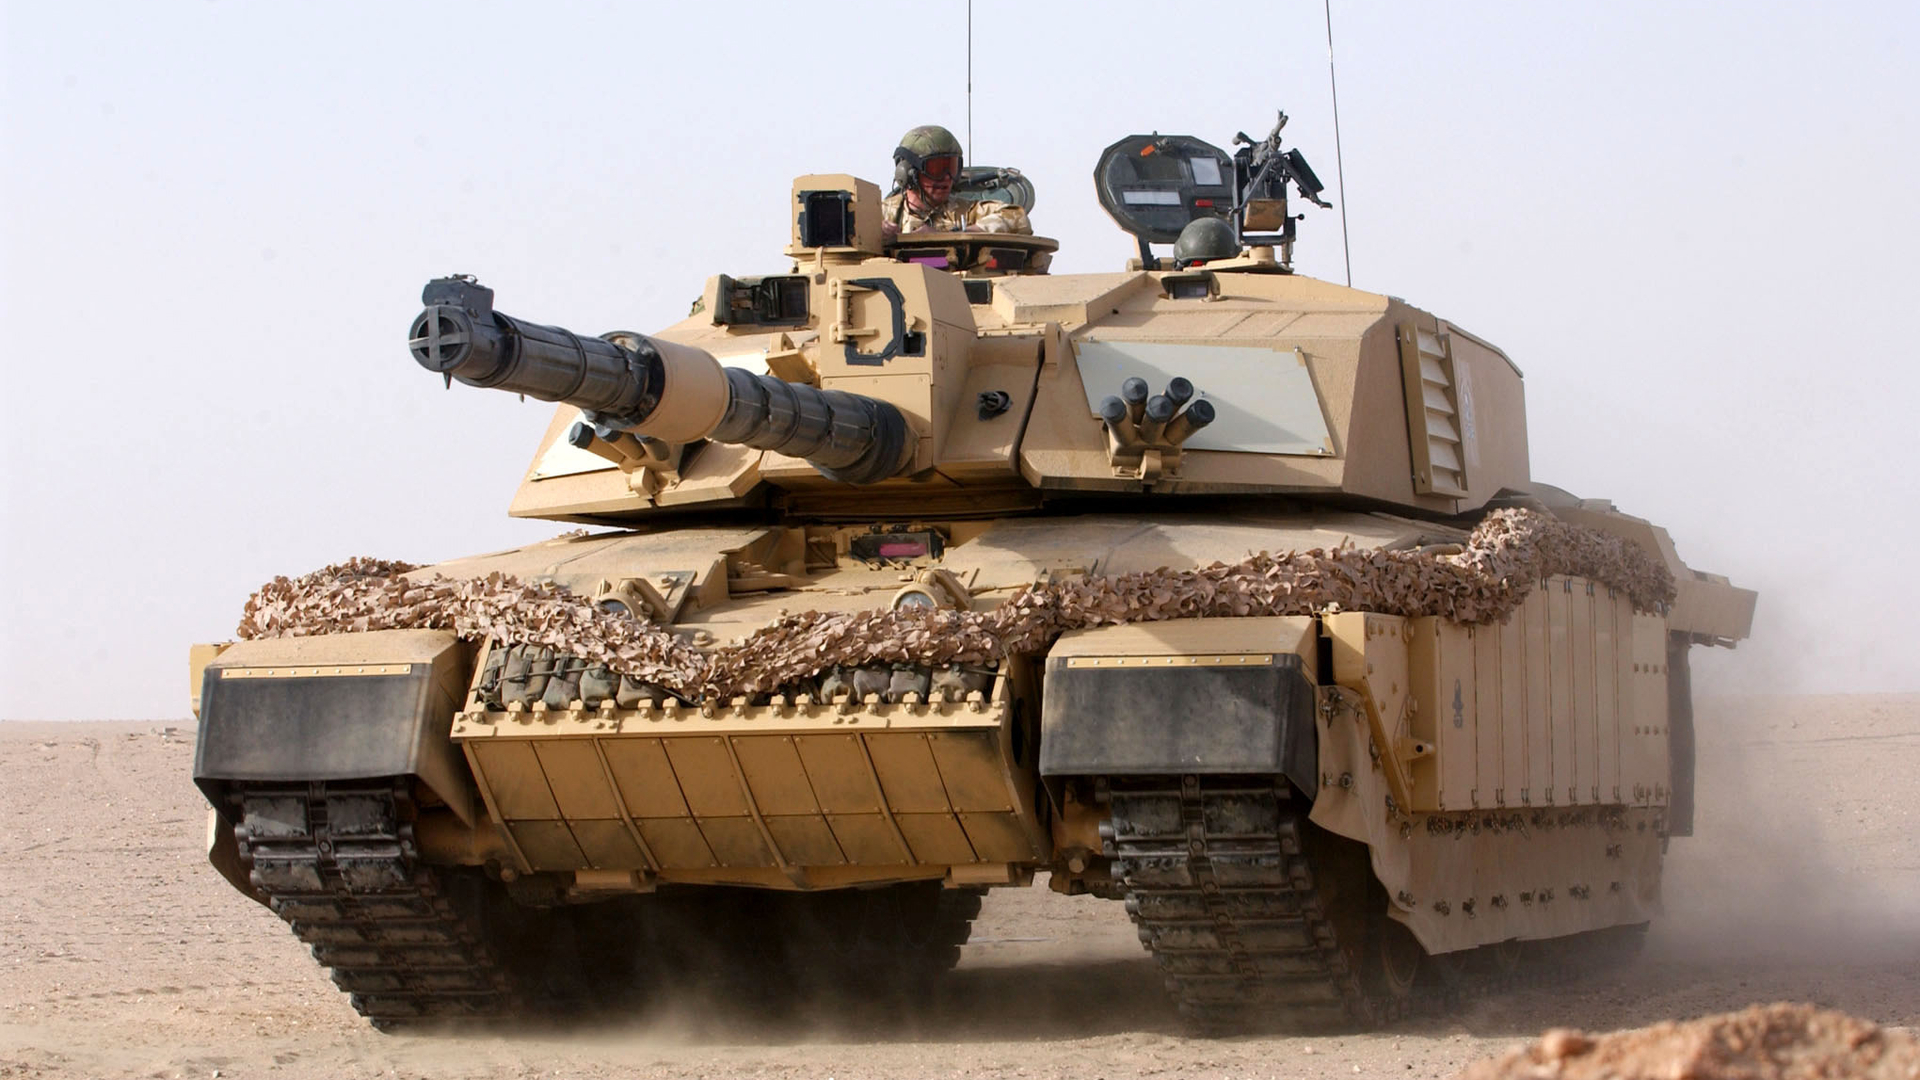 military deserts weapons tanks